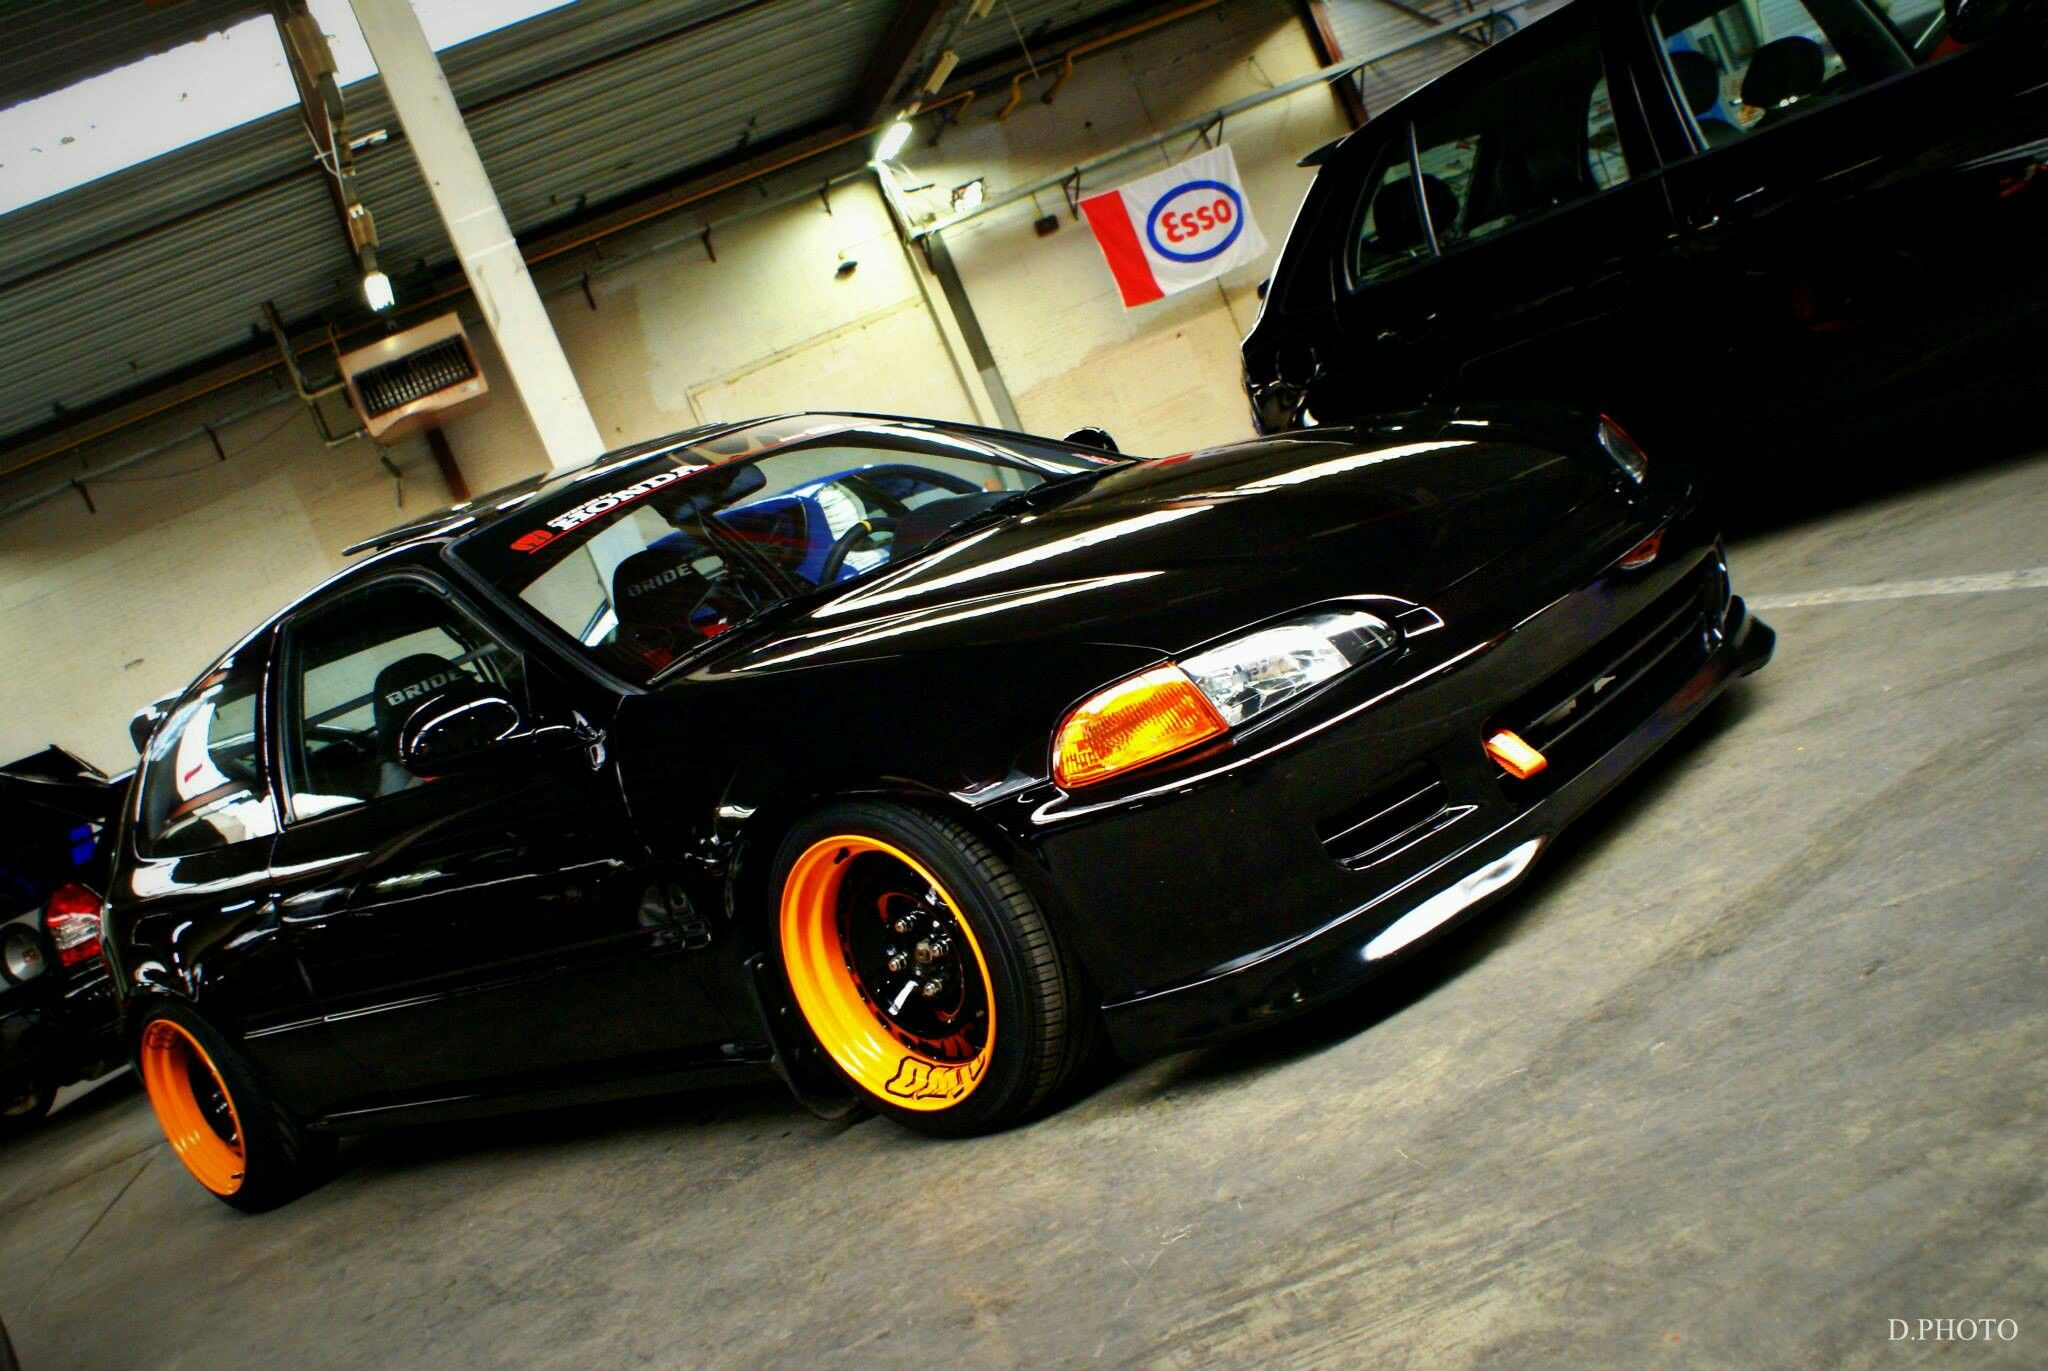 Pin by Papelix 06 on H Honda civic hatchback, Civic eg